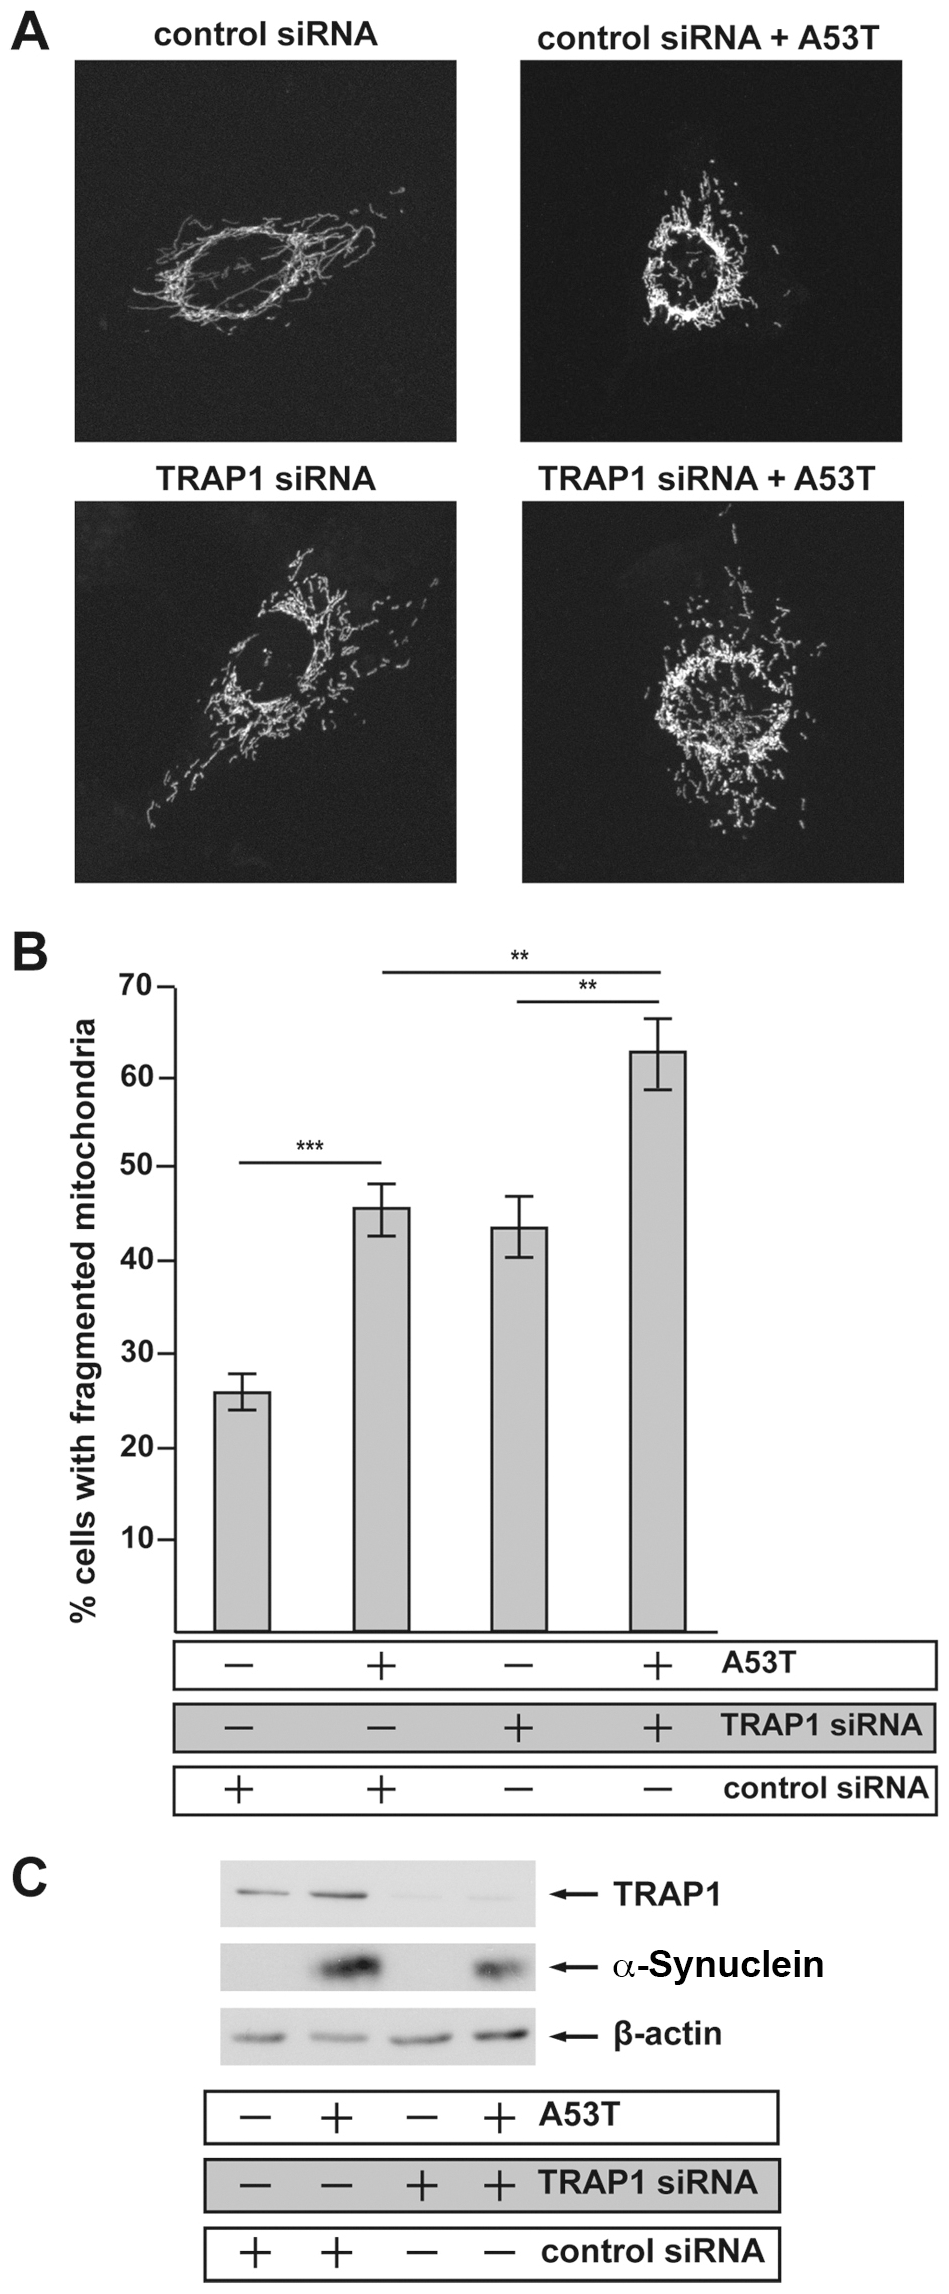 Transient siRNA-mediated knockdown of TRAP1 increases [A53T]α-Synuclein-induced mitochondrial fragmentation.